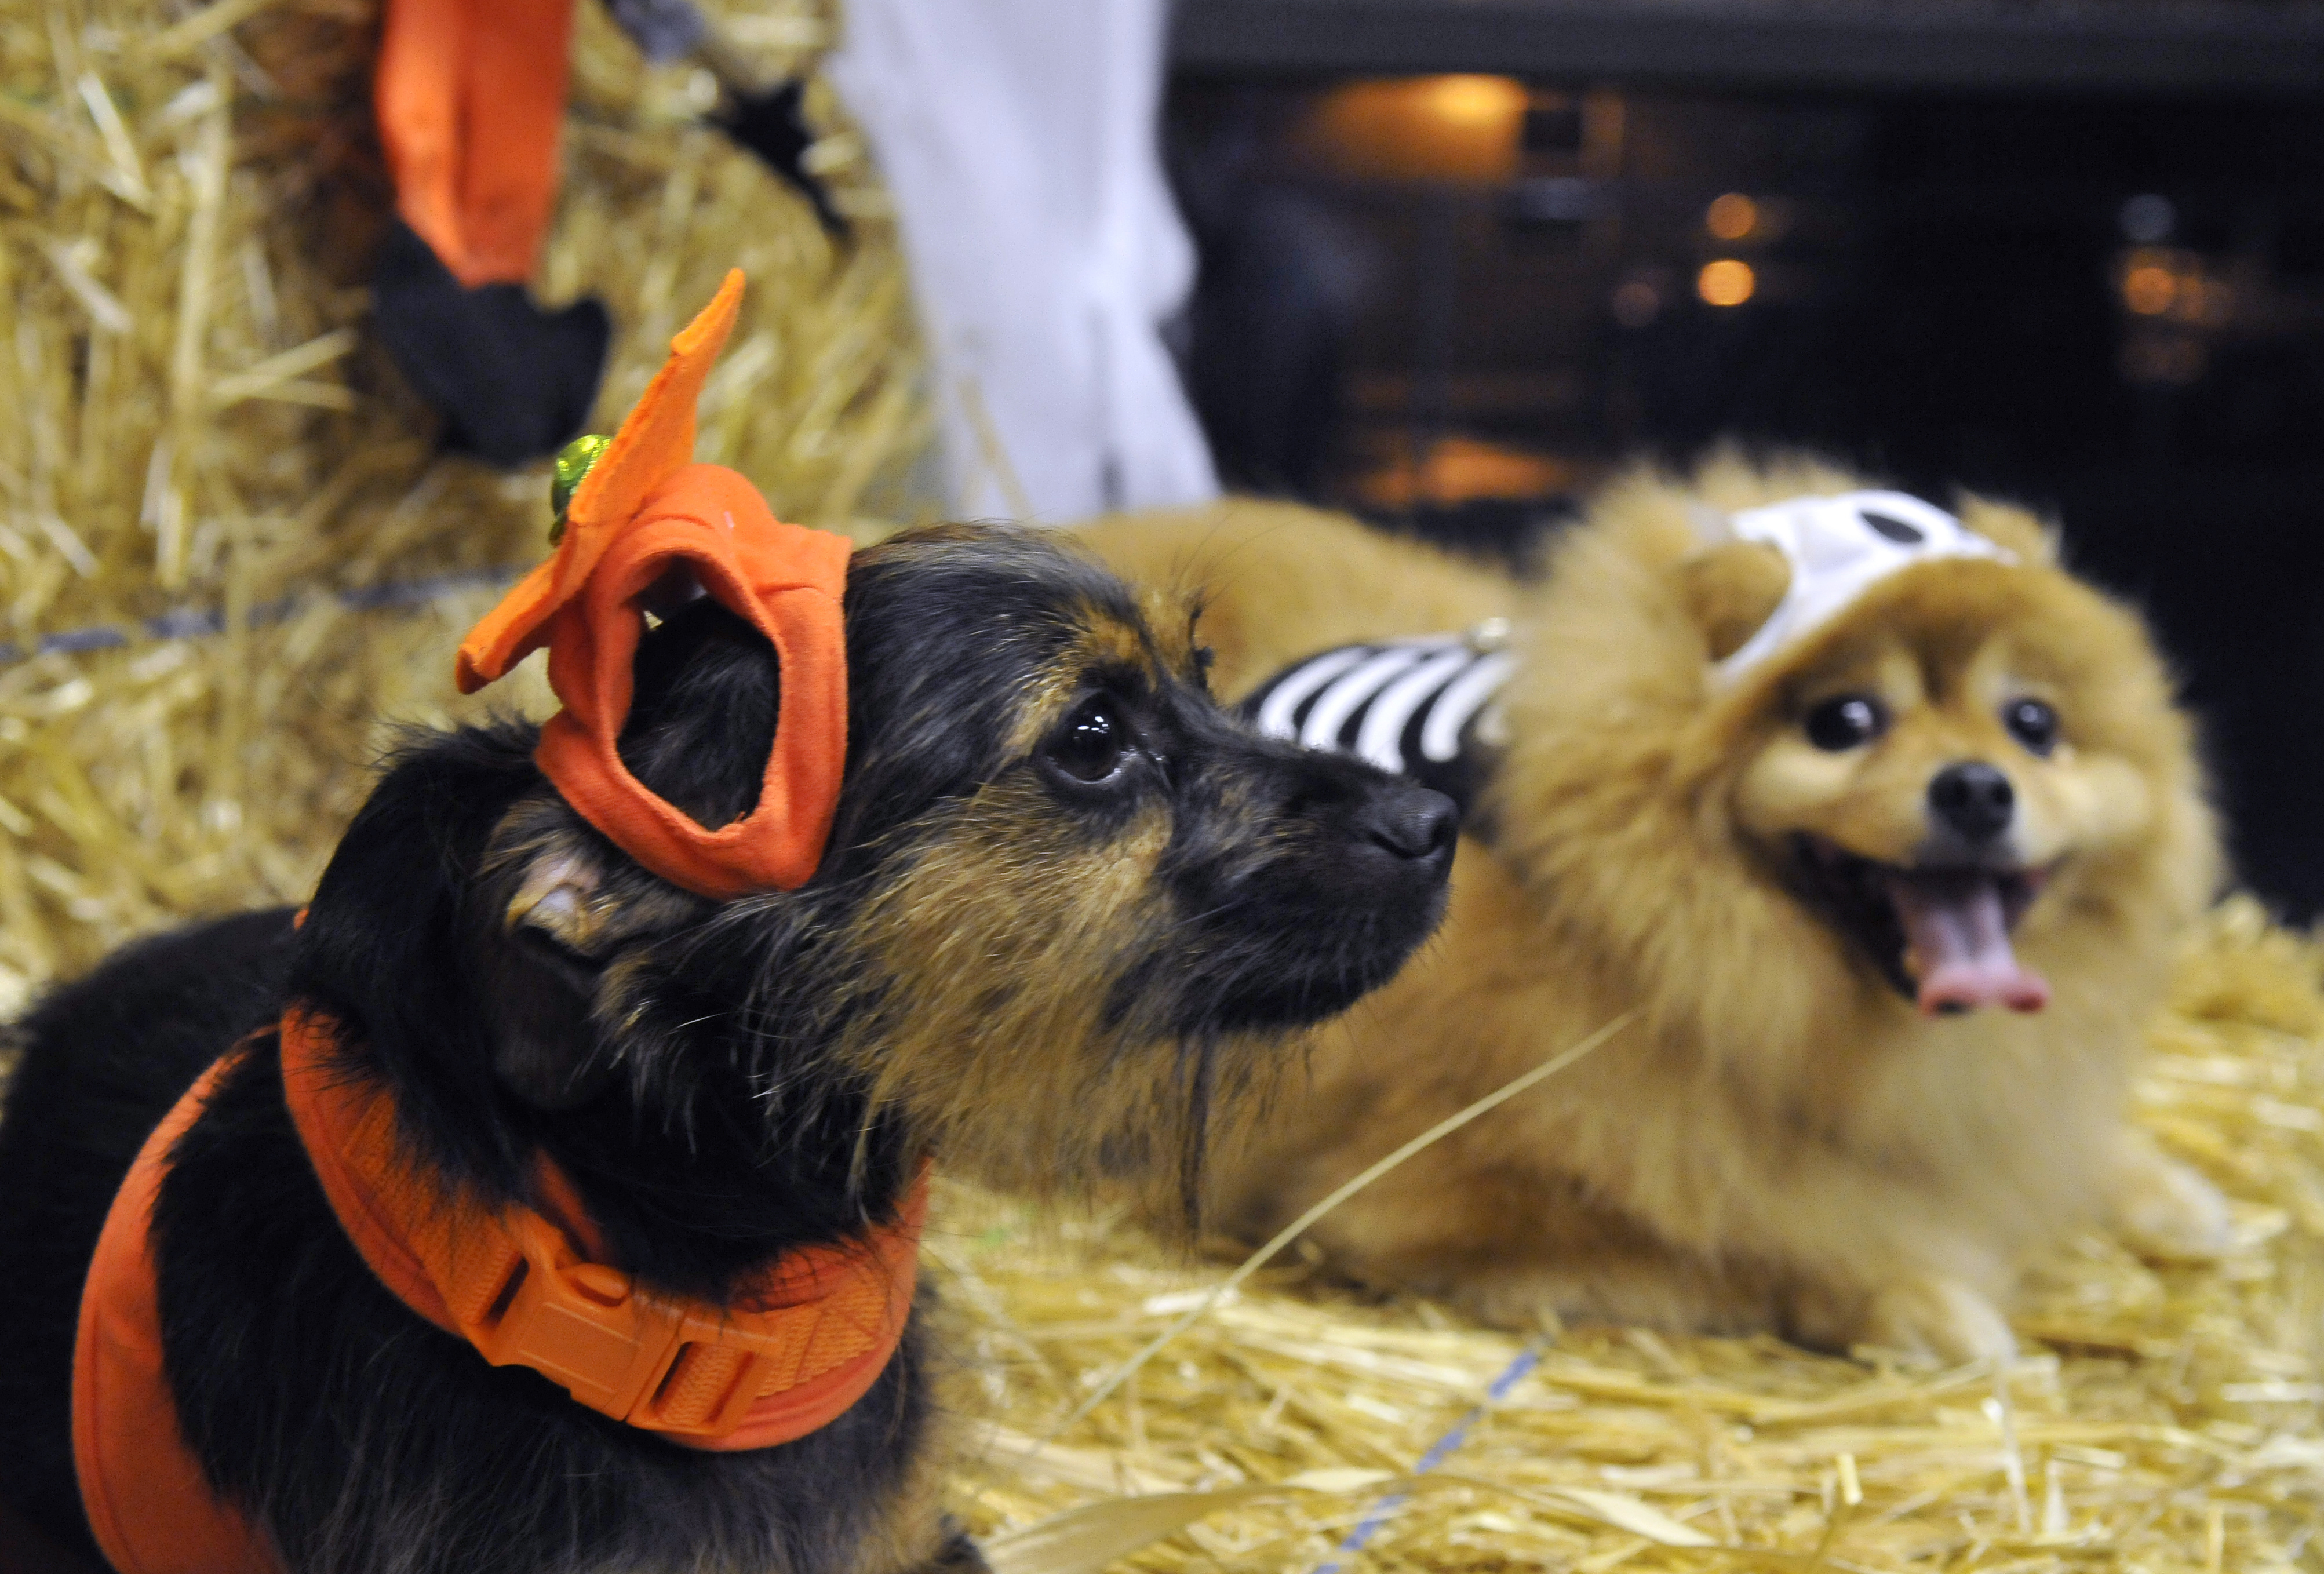 tricked out, ready for treats | the spokesman-review